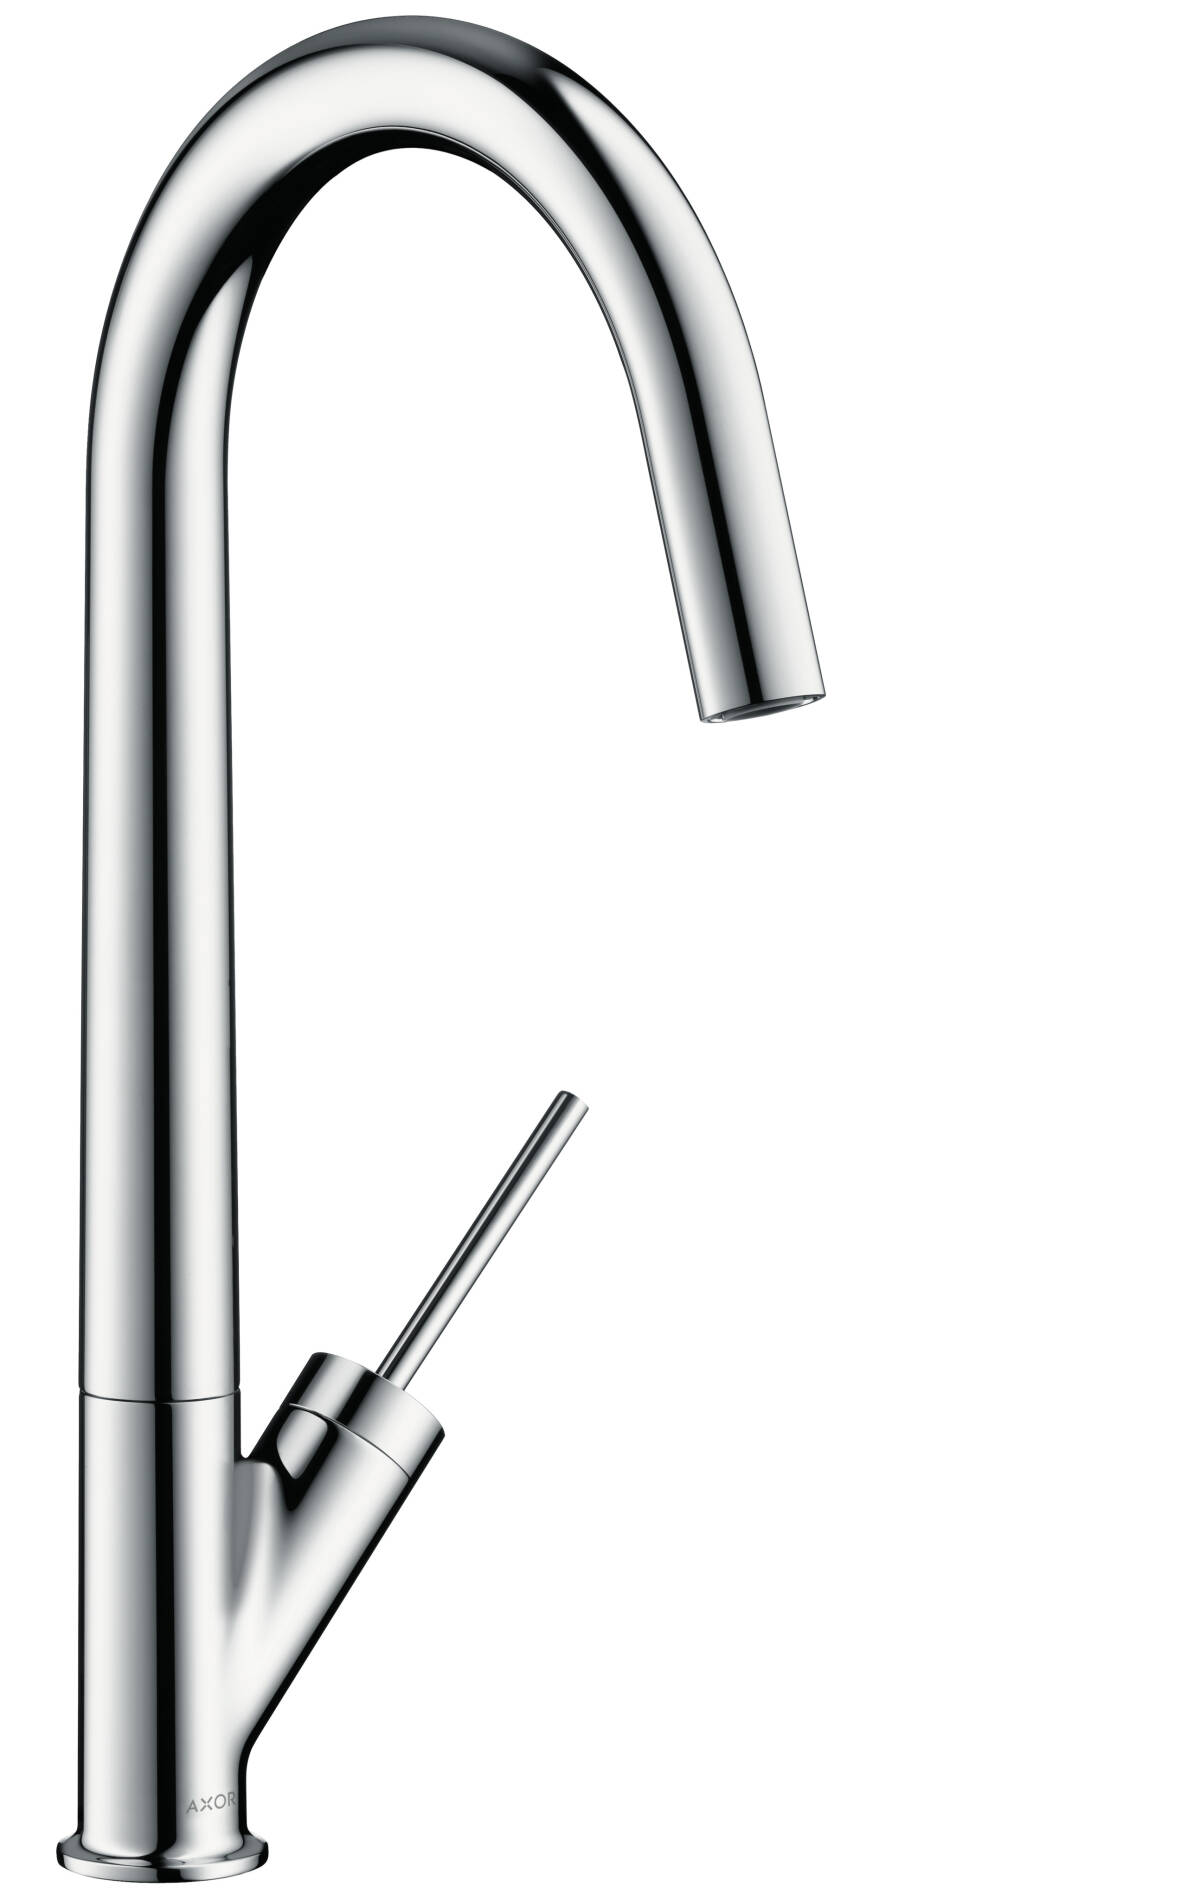 Single lever kitchen mixer 300 with swivel spout, Brushed Red Gold, 10822310